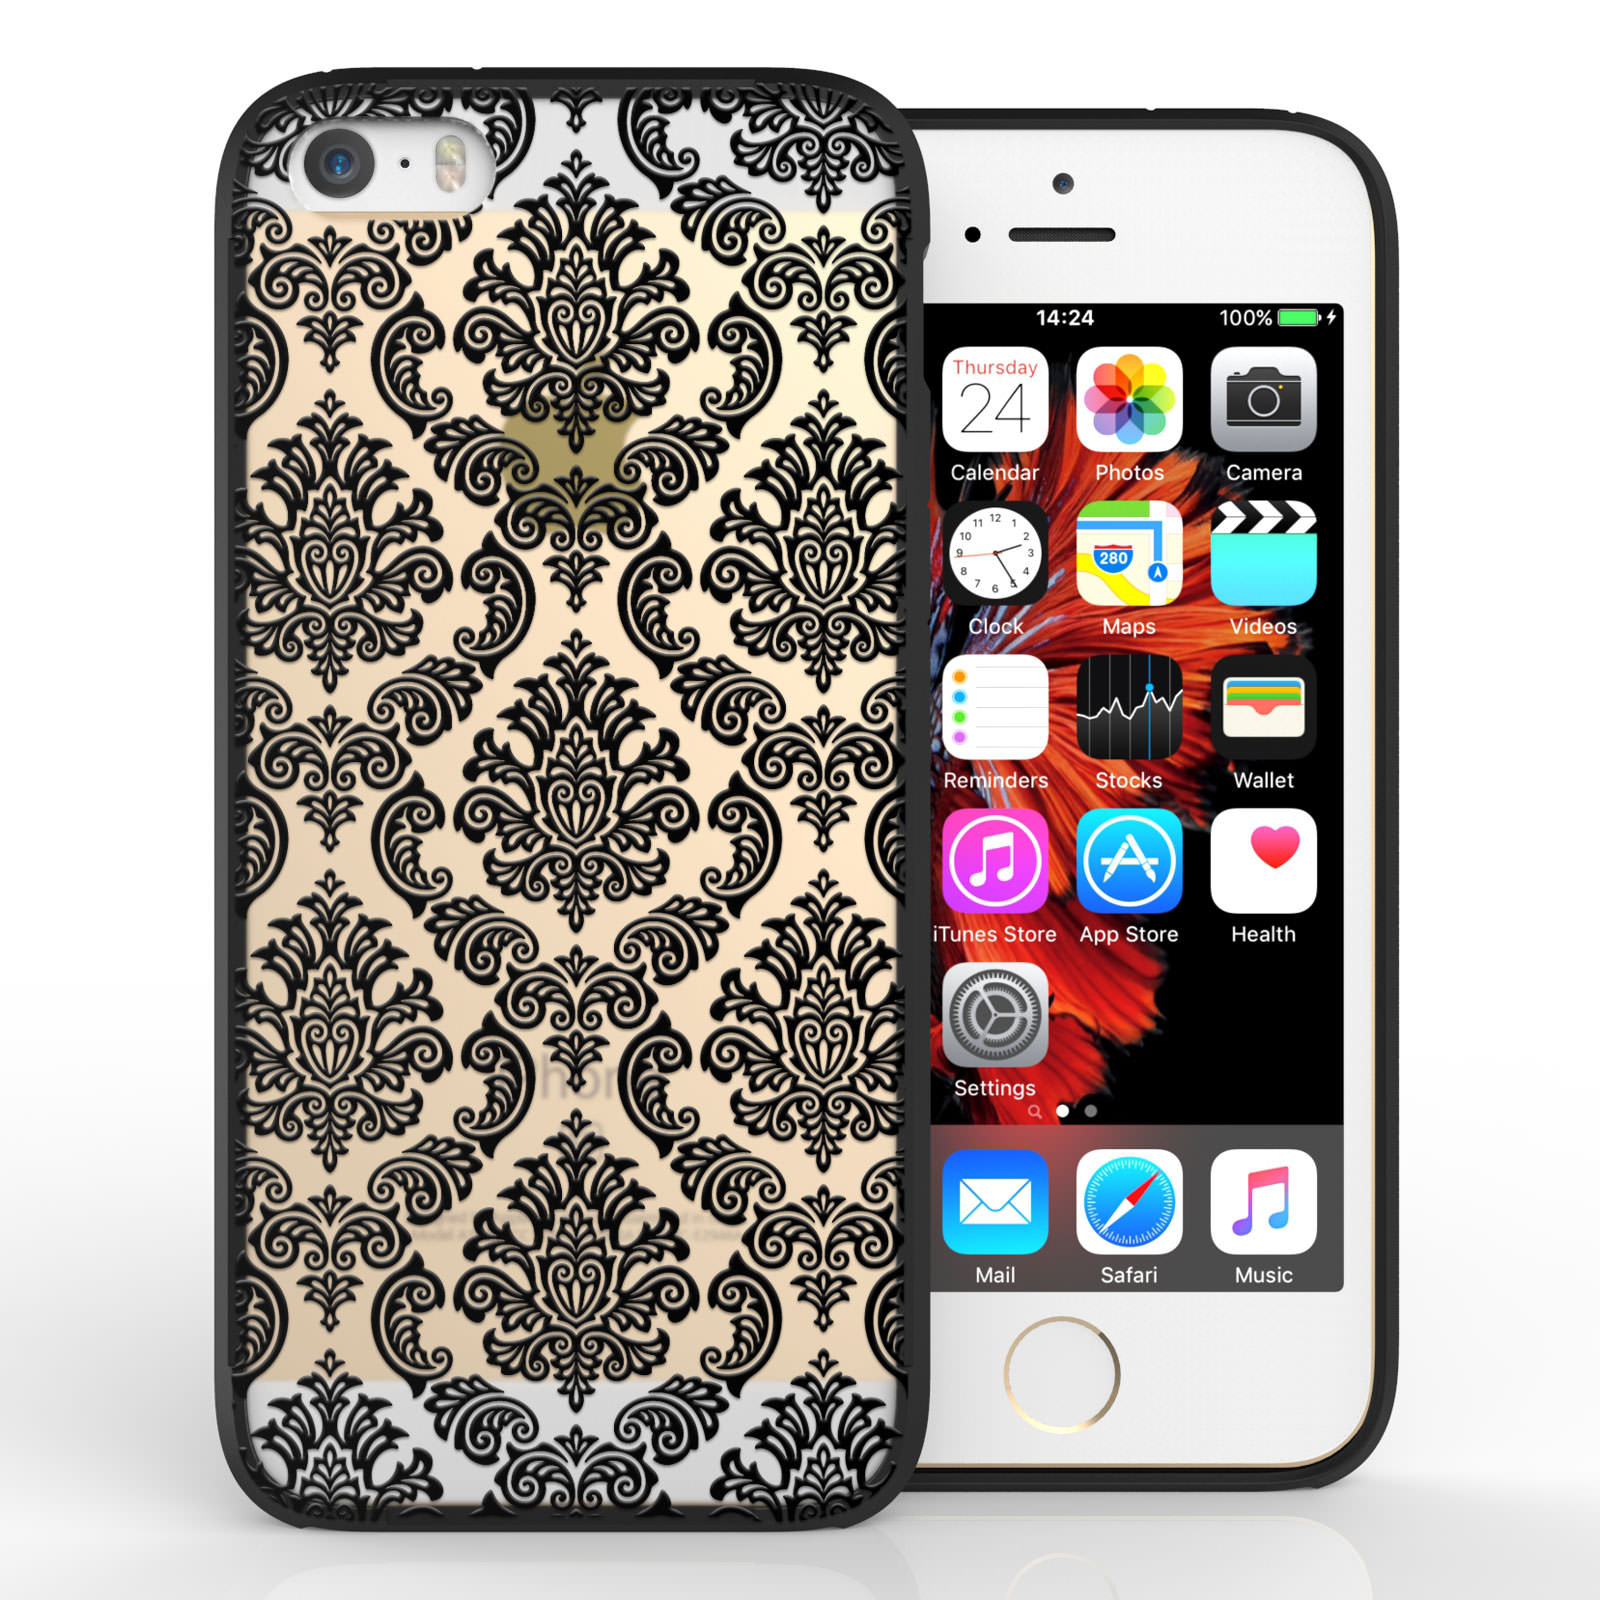 Yousave Accessories iPhone 5 and SE TPU Patterned Hard Case - Damask Black